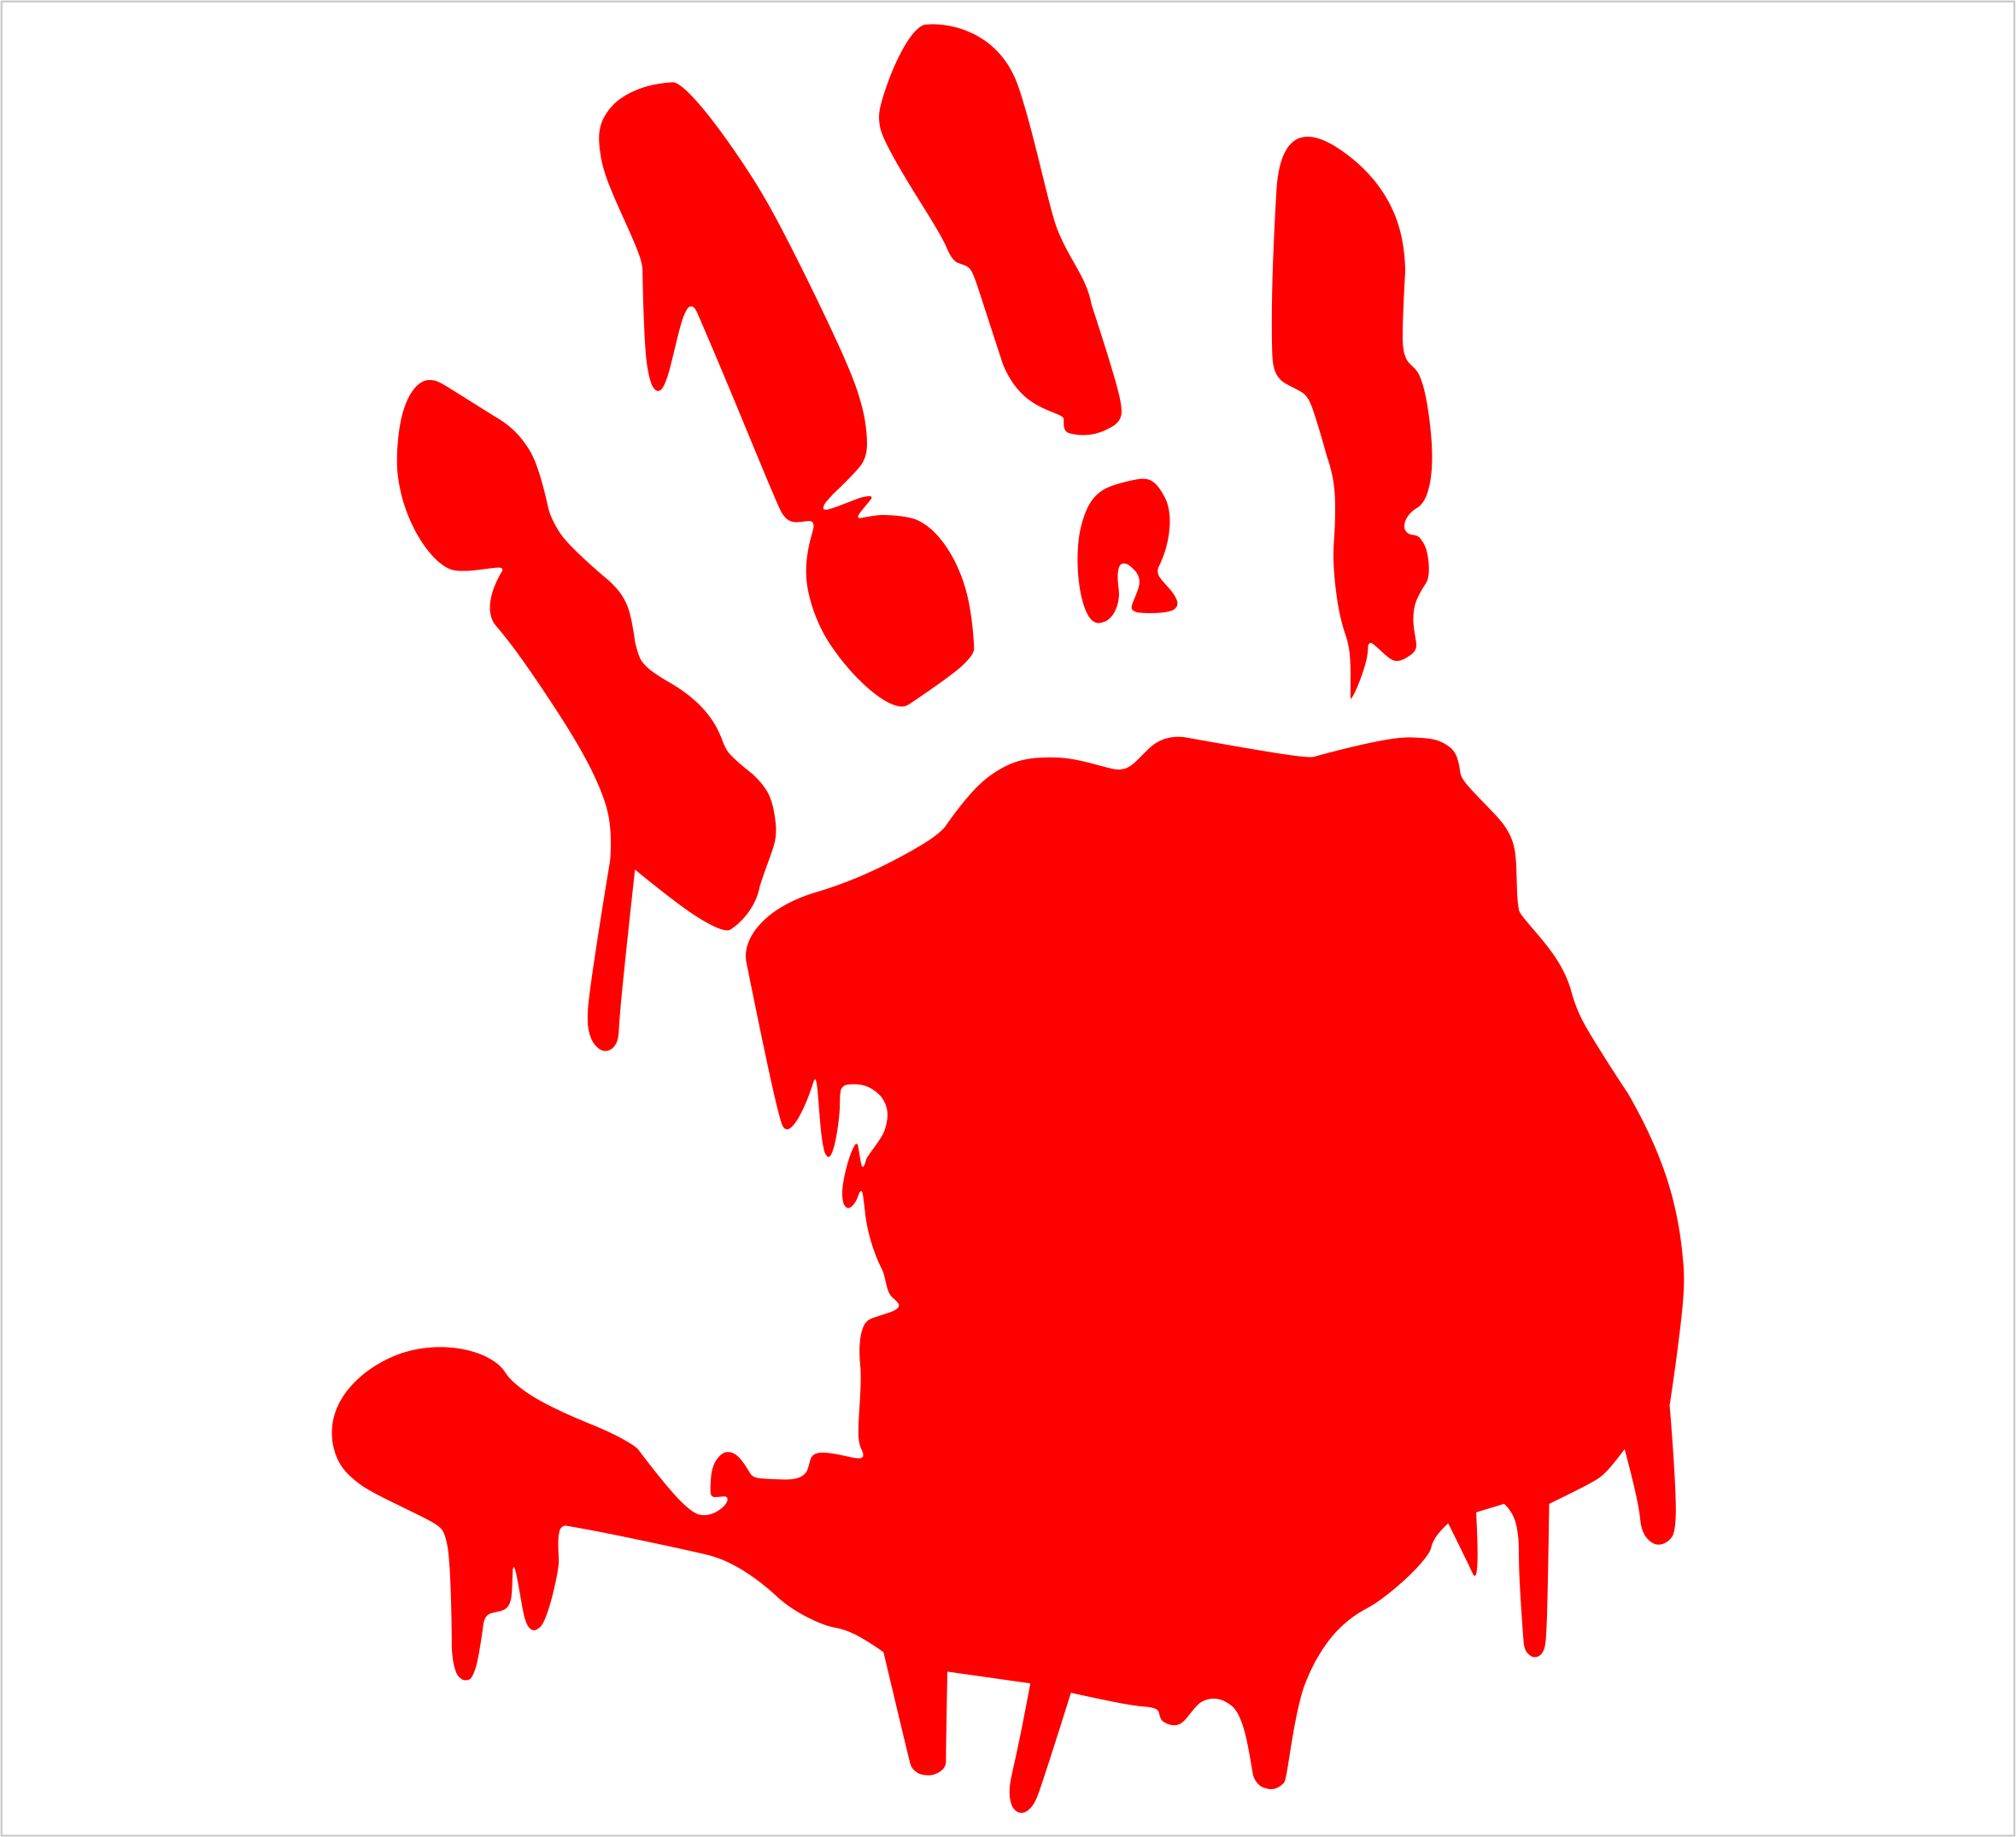 Handprint clipart blood Cliparts Single Free Clipart Image